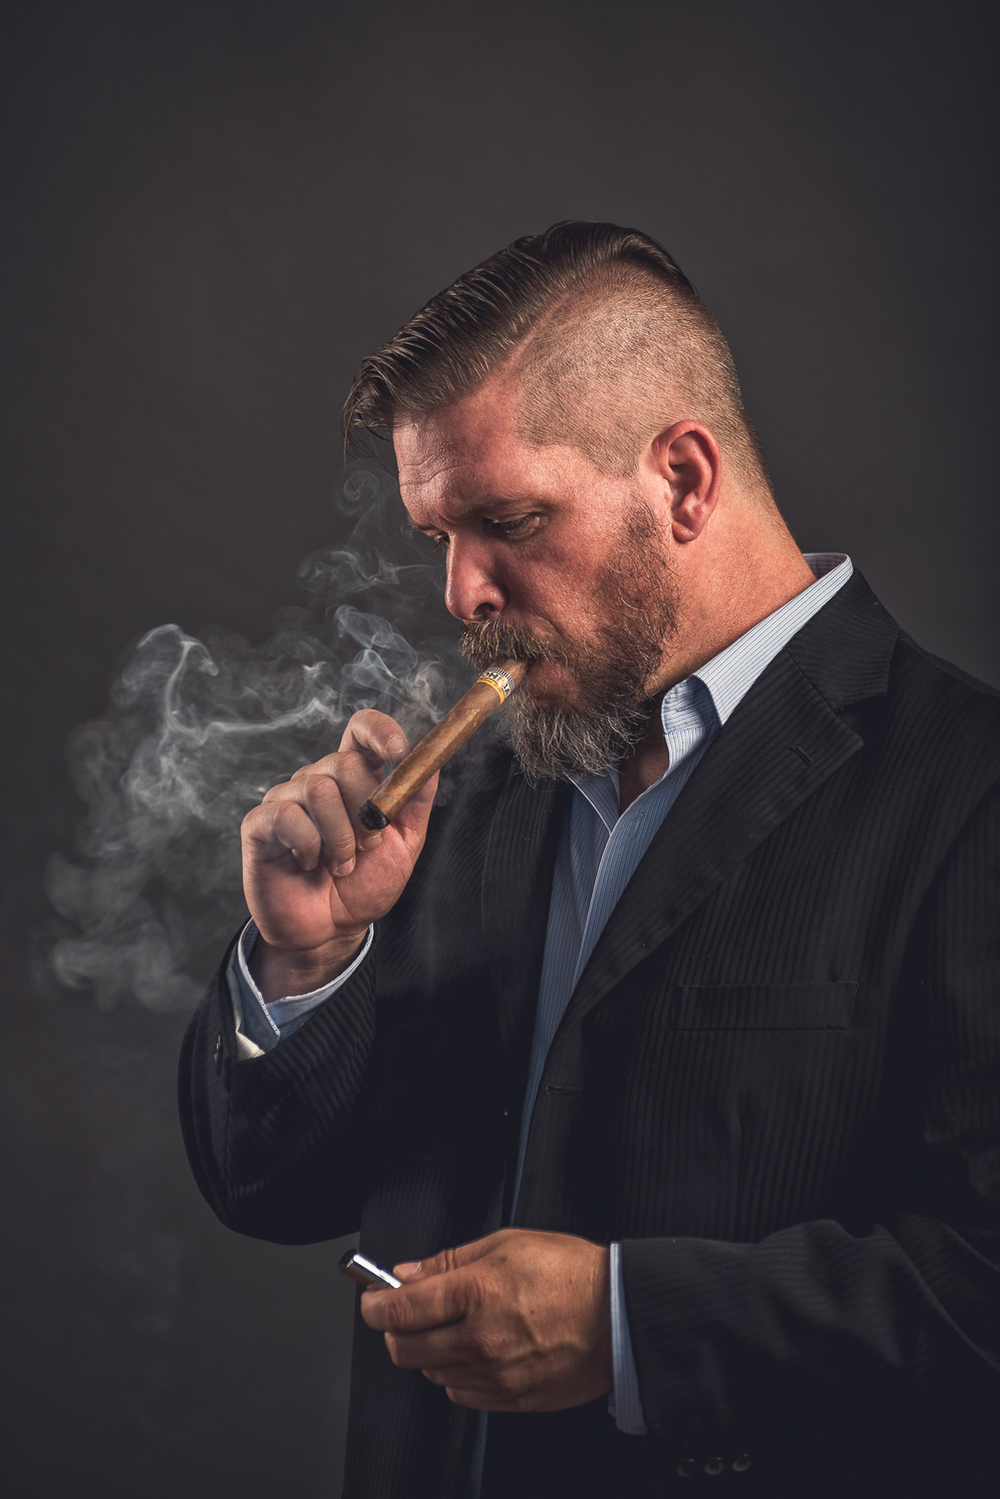 Hamilton Toronto Portrait Photographer - Smoking Cuban Cigar by Marek Michalek.jpg